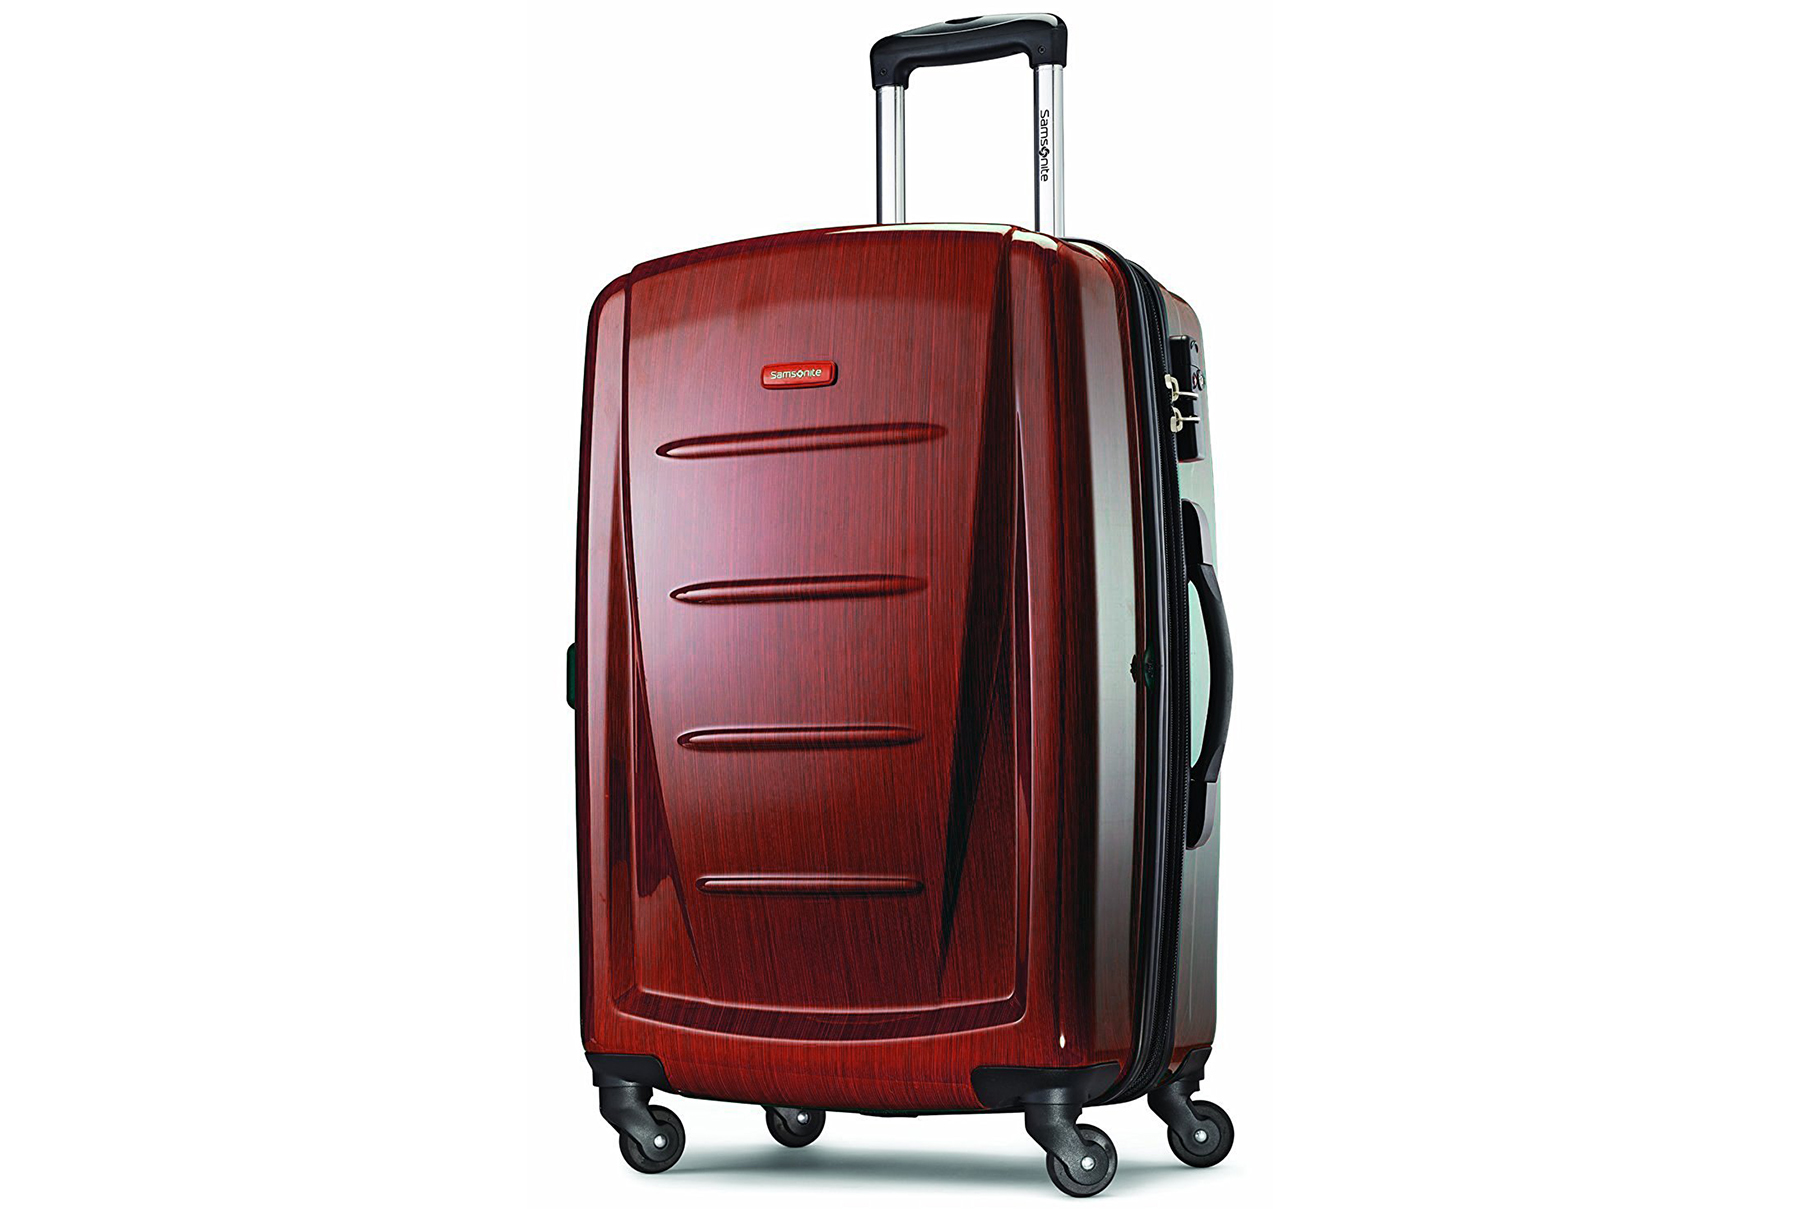 Samsonite Winfield2 Fashion 28-Inch Luggage